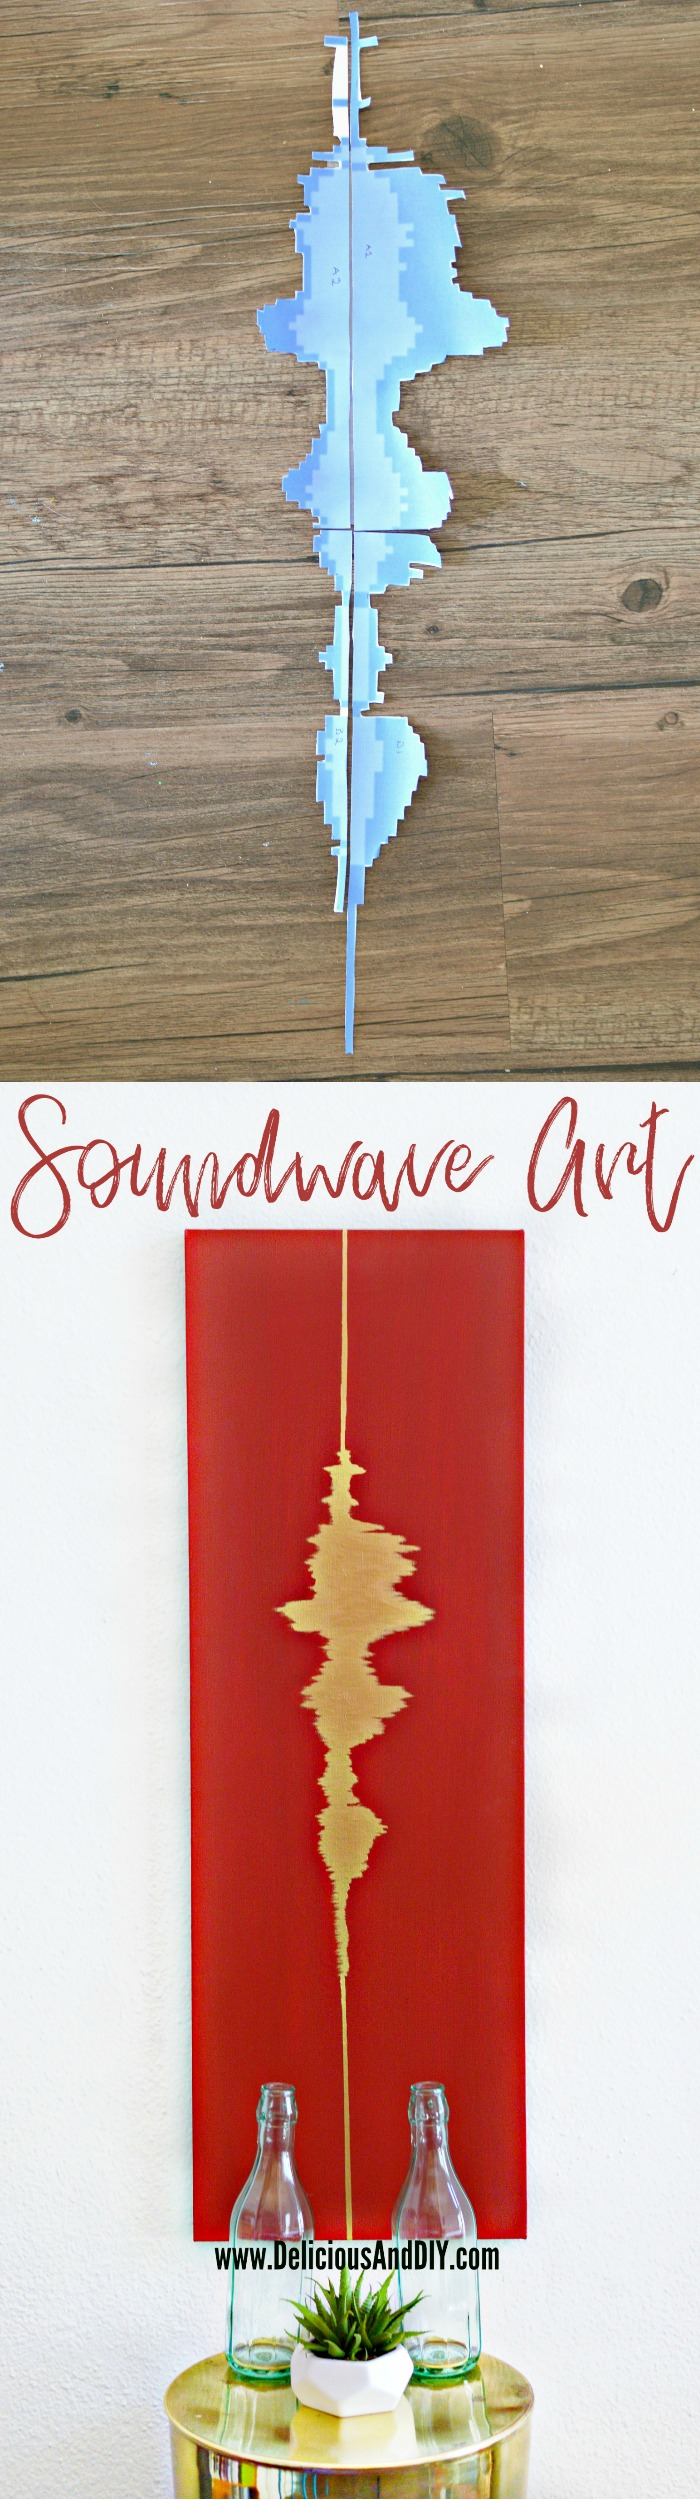 Paint a personal message for your love one with this fun DIY Sound wave Wall Art| Painted Canvas| Creative Gift Ideas| Valentine Day Personalized Gift Ideas| Gallery Wall Idea| Canvas Art| DIY Handprinted Canvas| Red Wall Art Idea| Home Decor